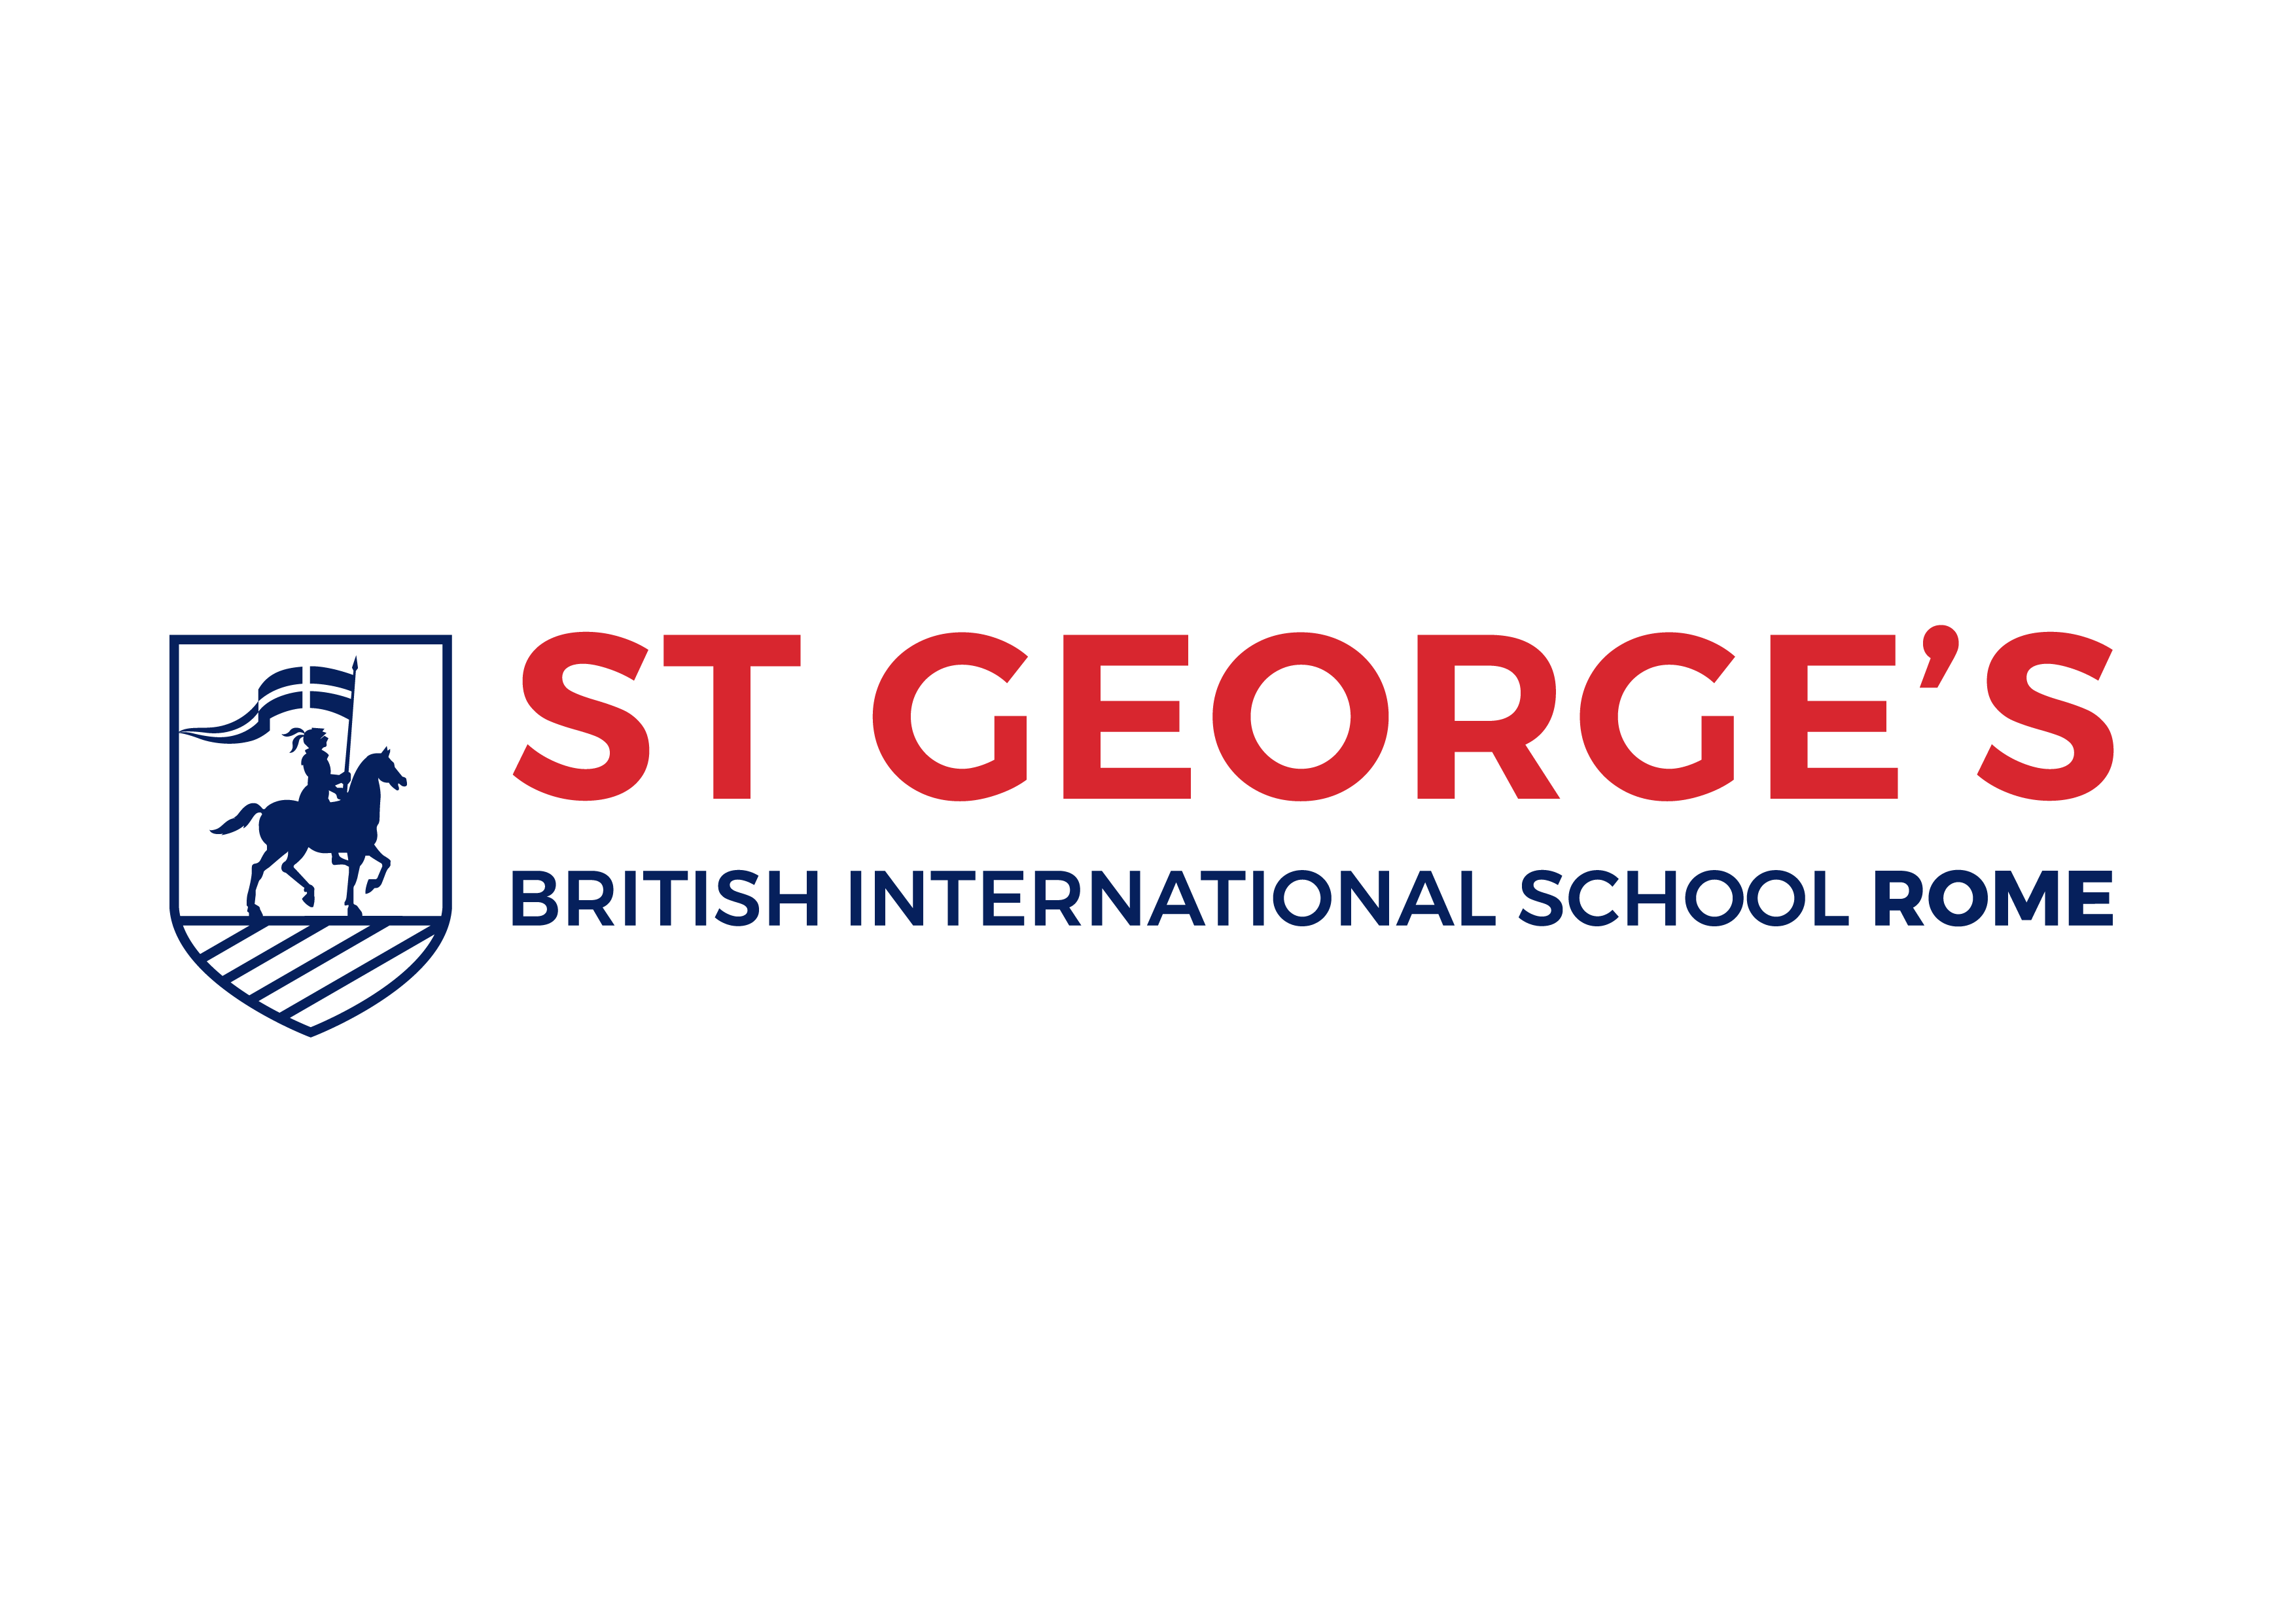 St George's British International School Hosts Maths Competition 2021